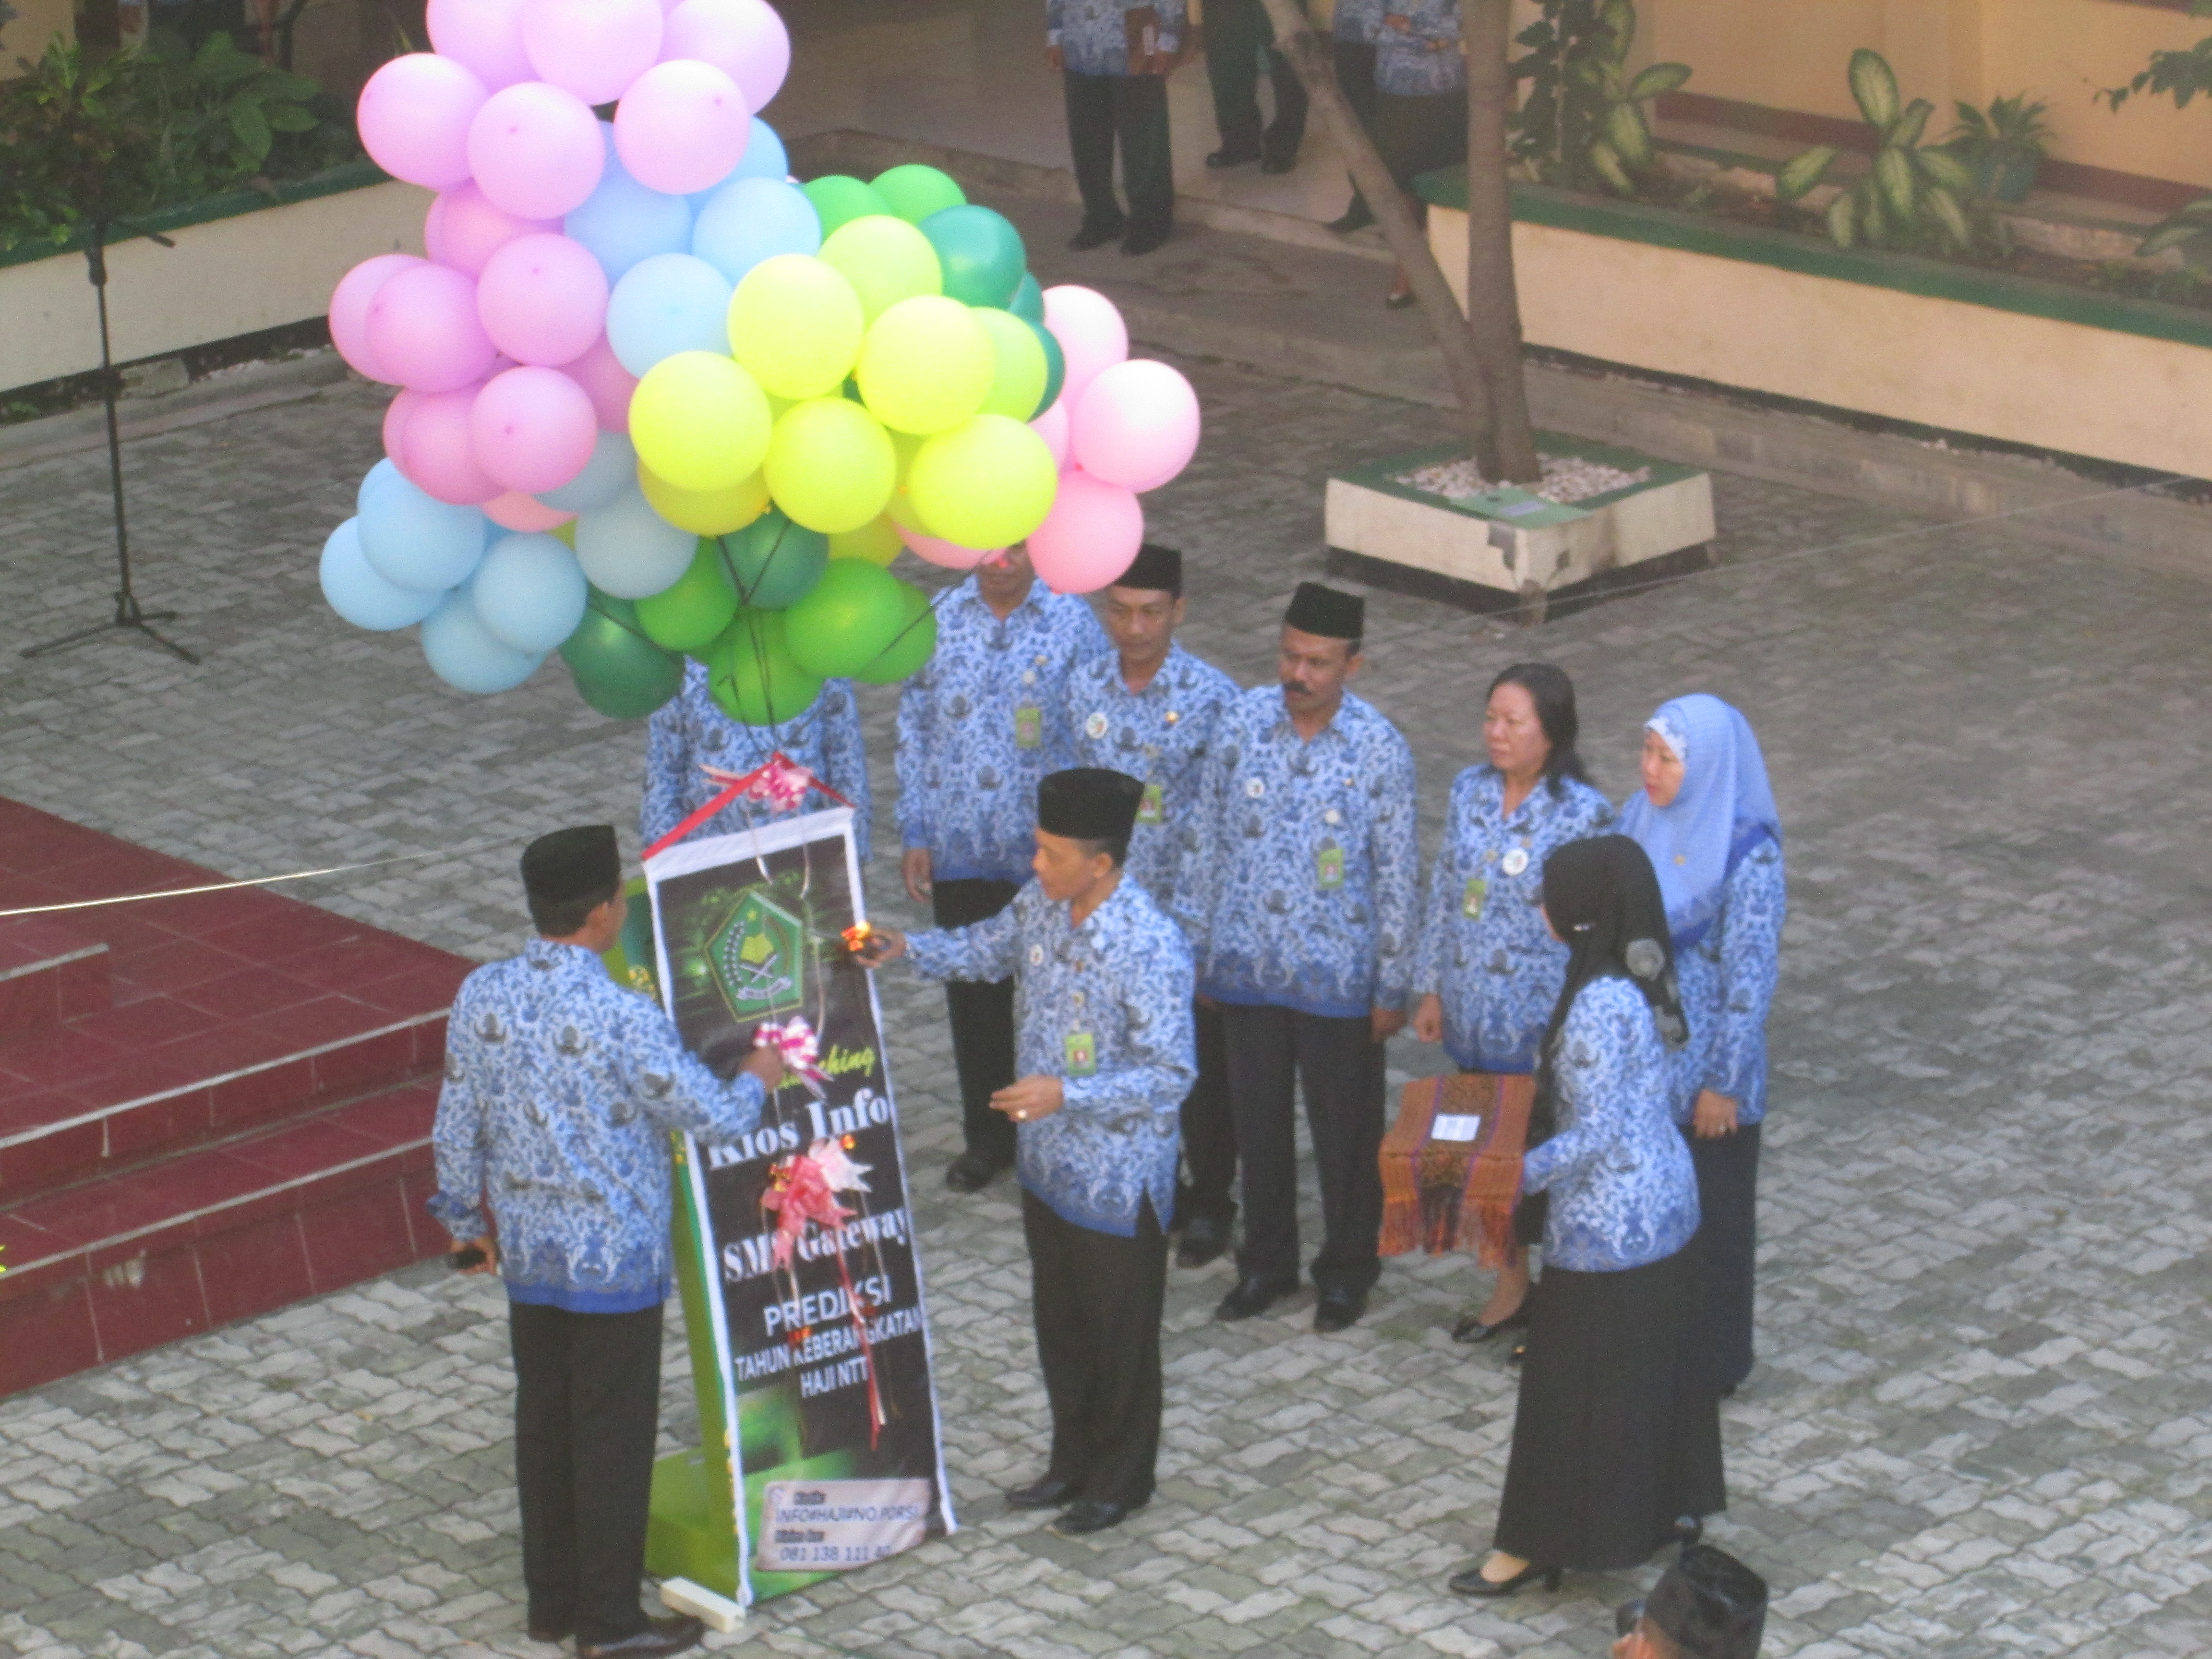 Launching Kios Info Haji